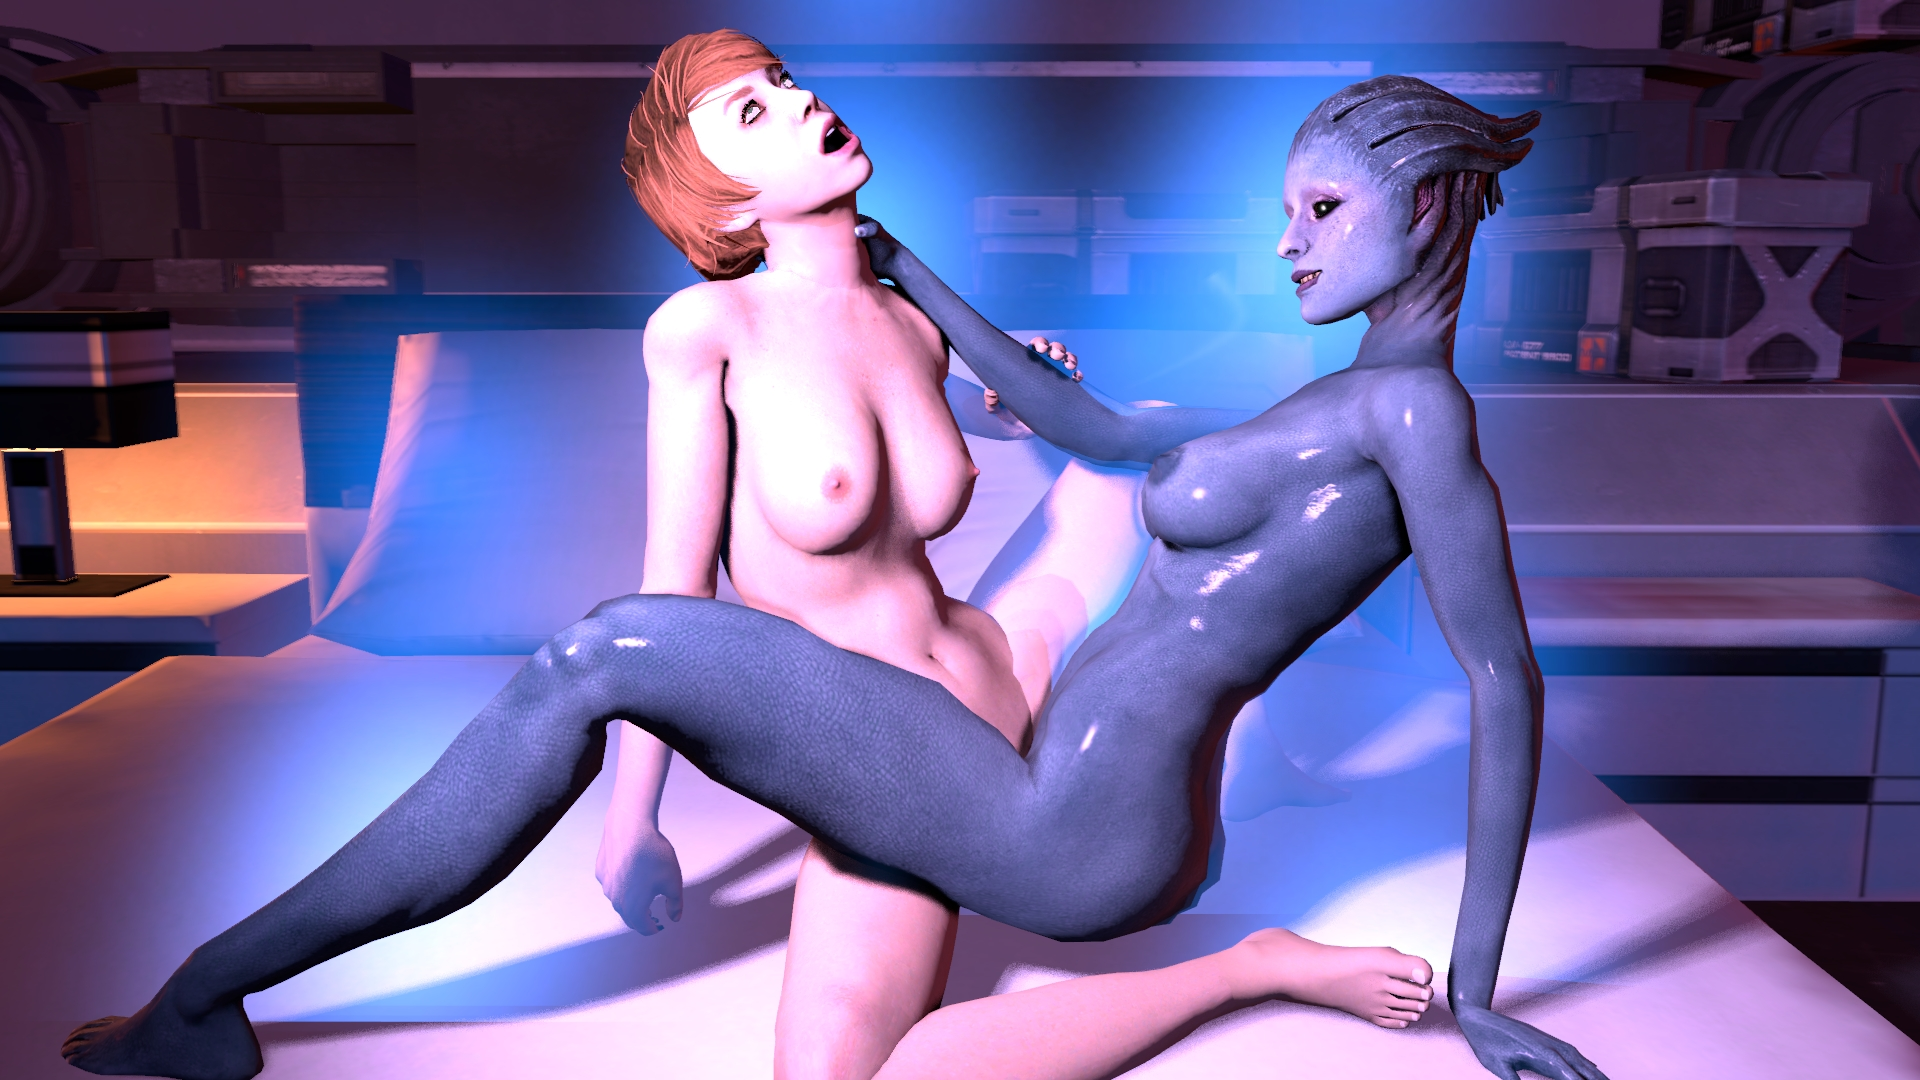 Mass effect toons naked sexy girls nude image